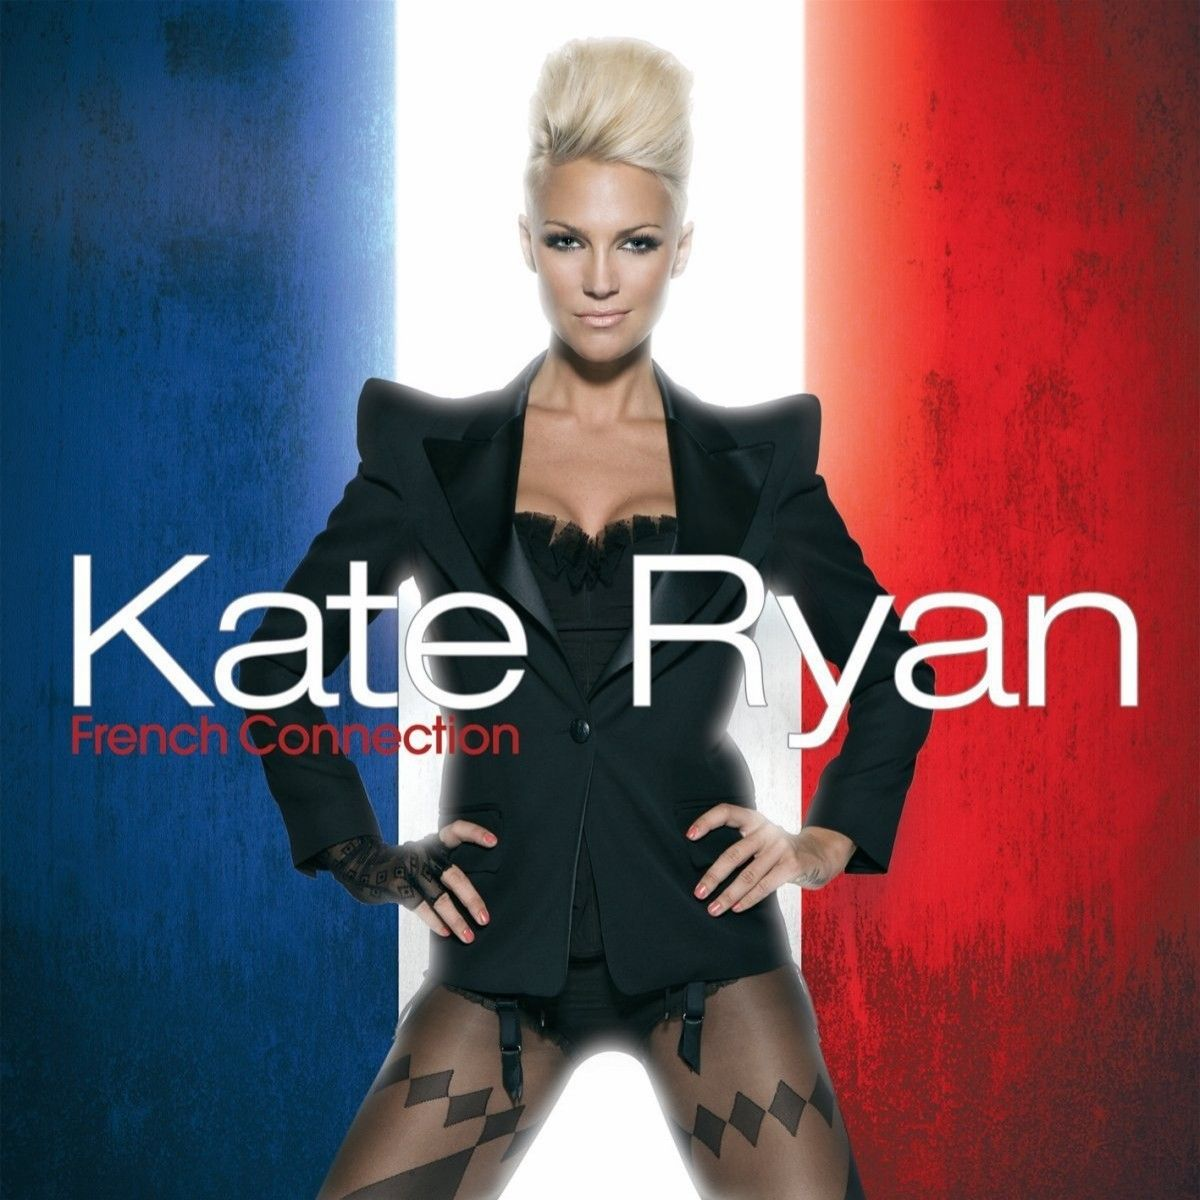 Kate Ryan - French Connection album cover